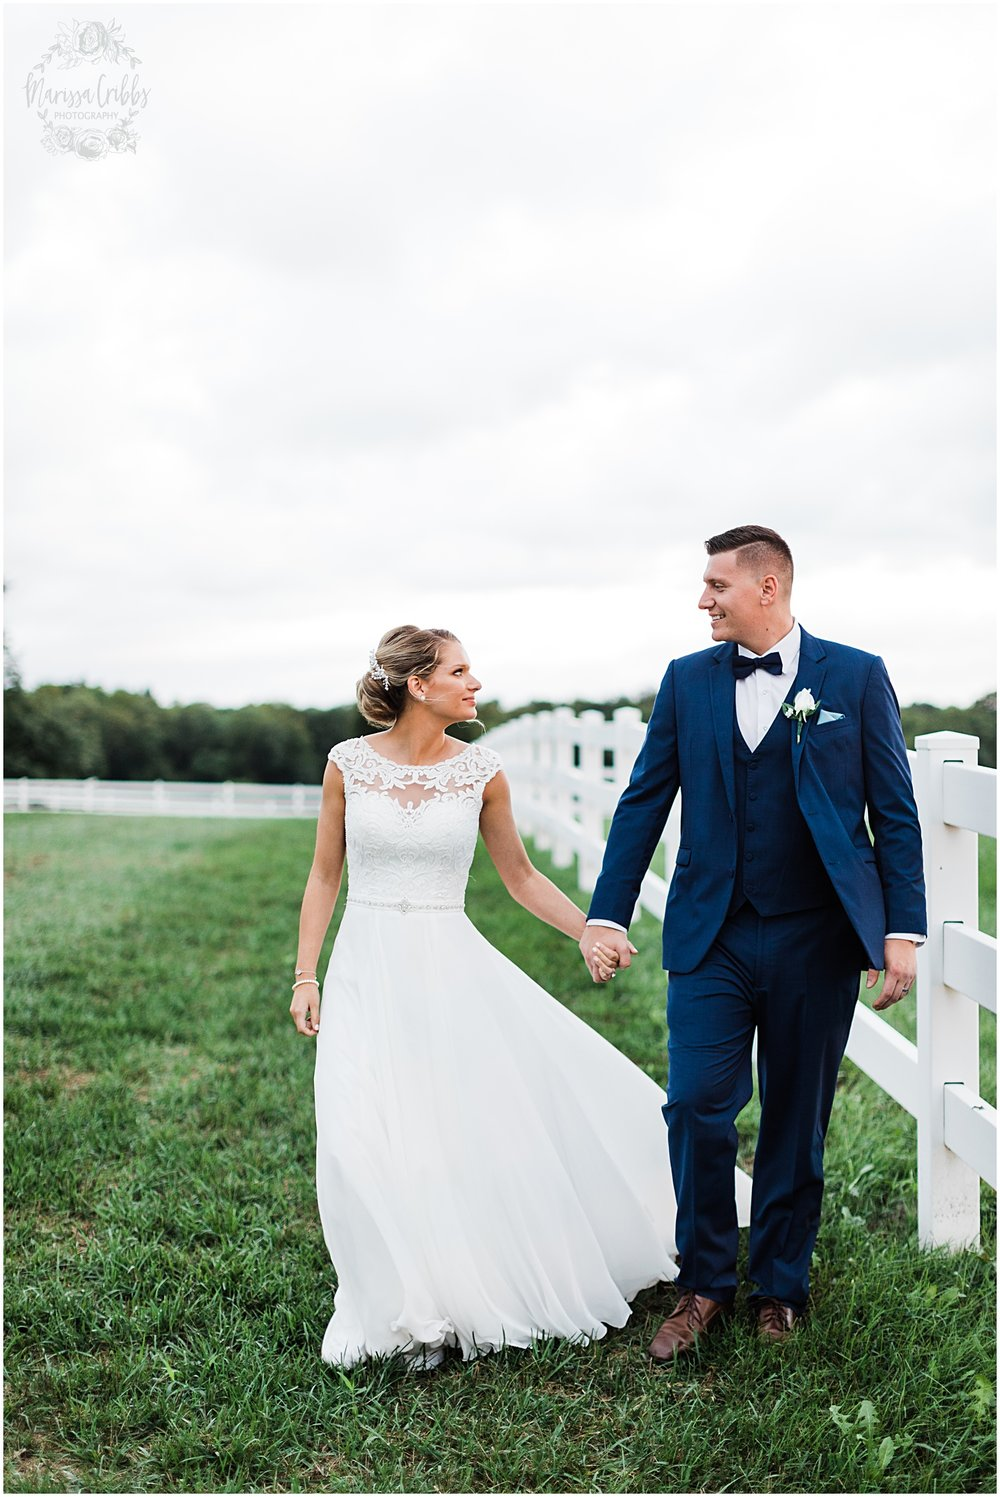 ROUNKLES WEDDING | MARISSA CRIBBS PHOTOGRAPHY | MILDALE FARM_6181.jpg